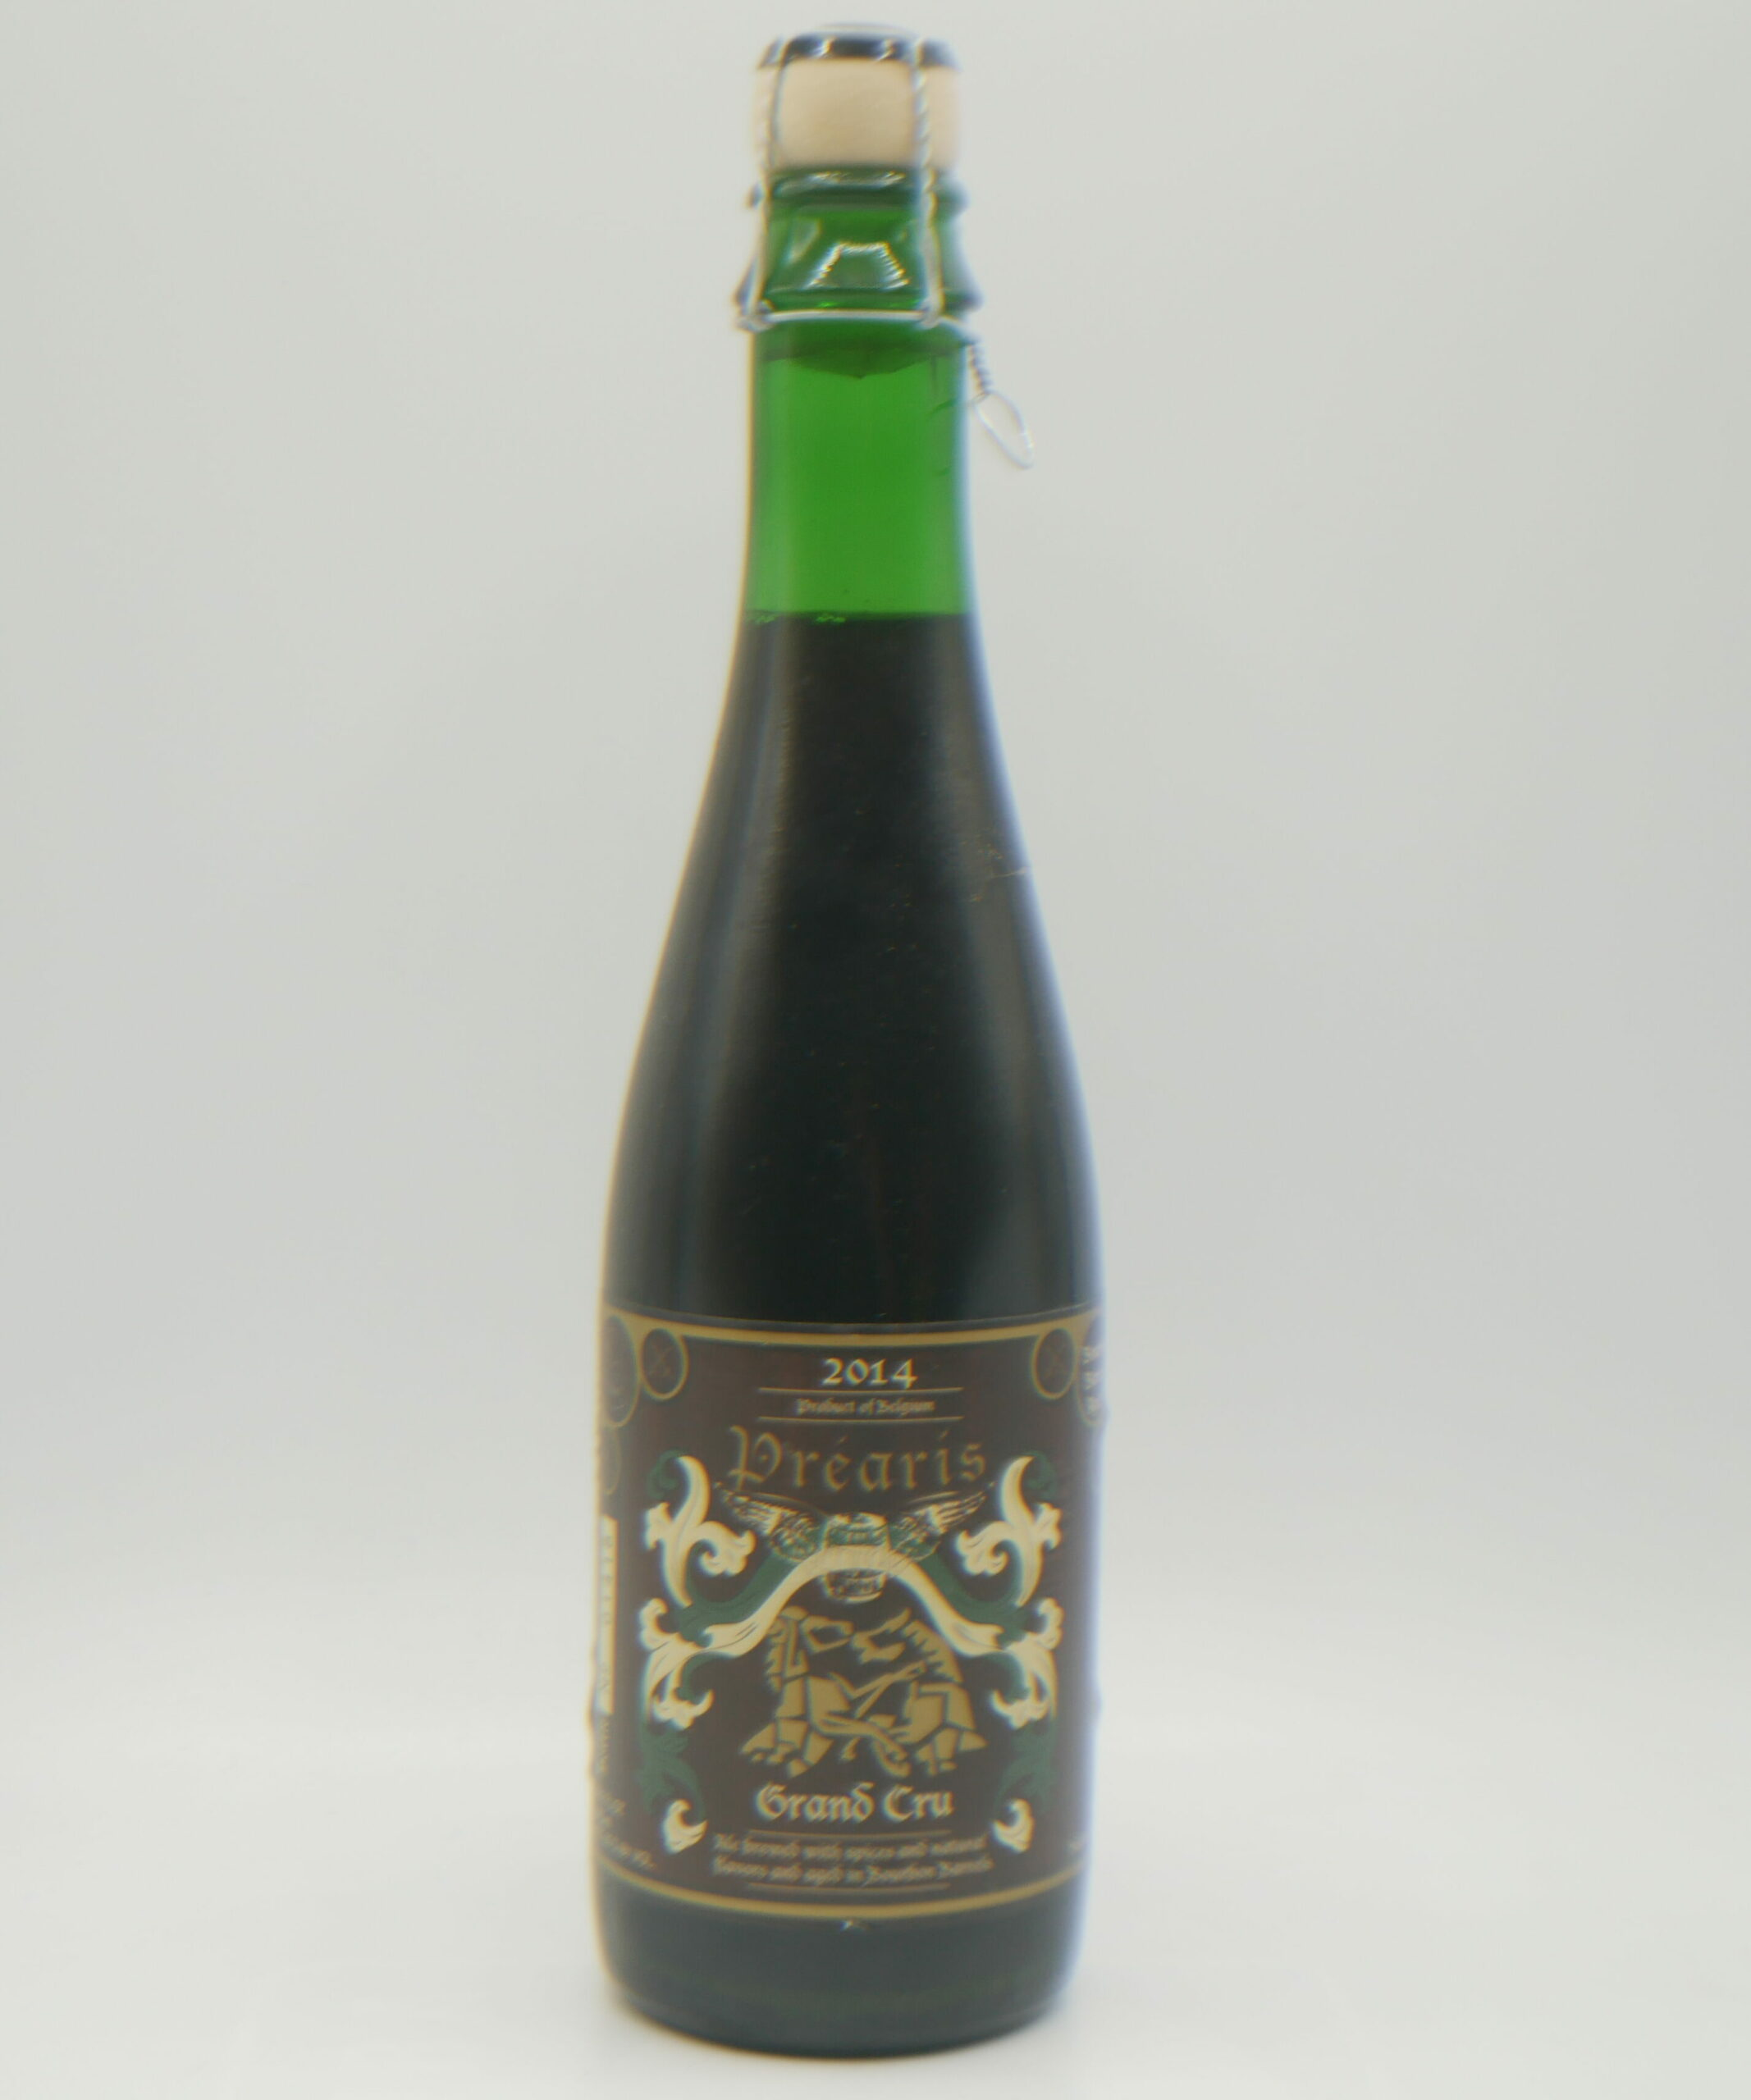 Img Prearis Grand cru Bourbon barrel aged bbf 13/11/2017